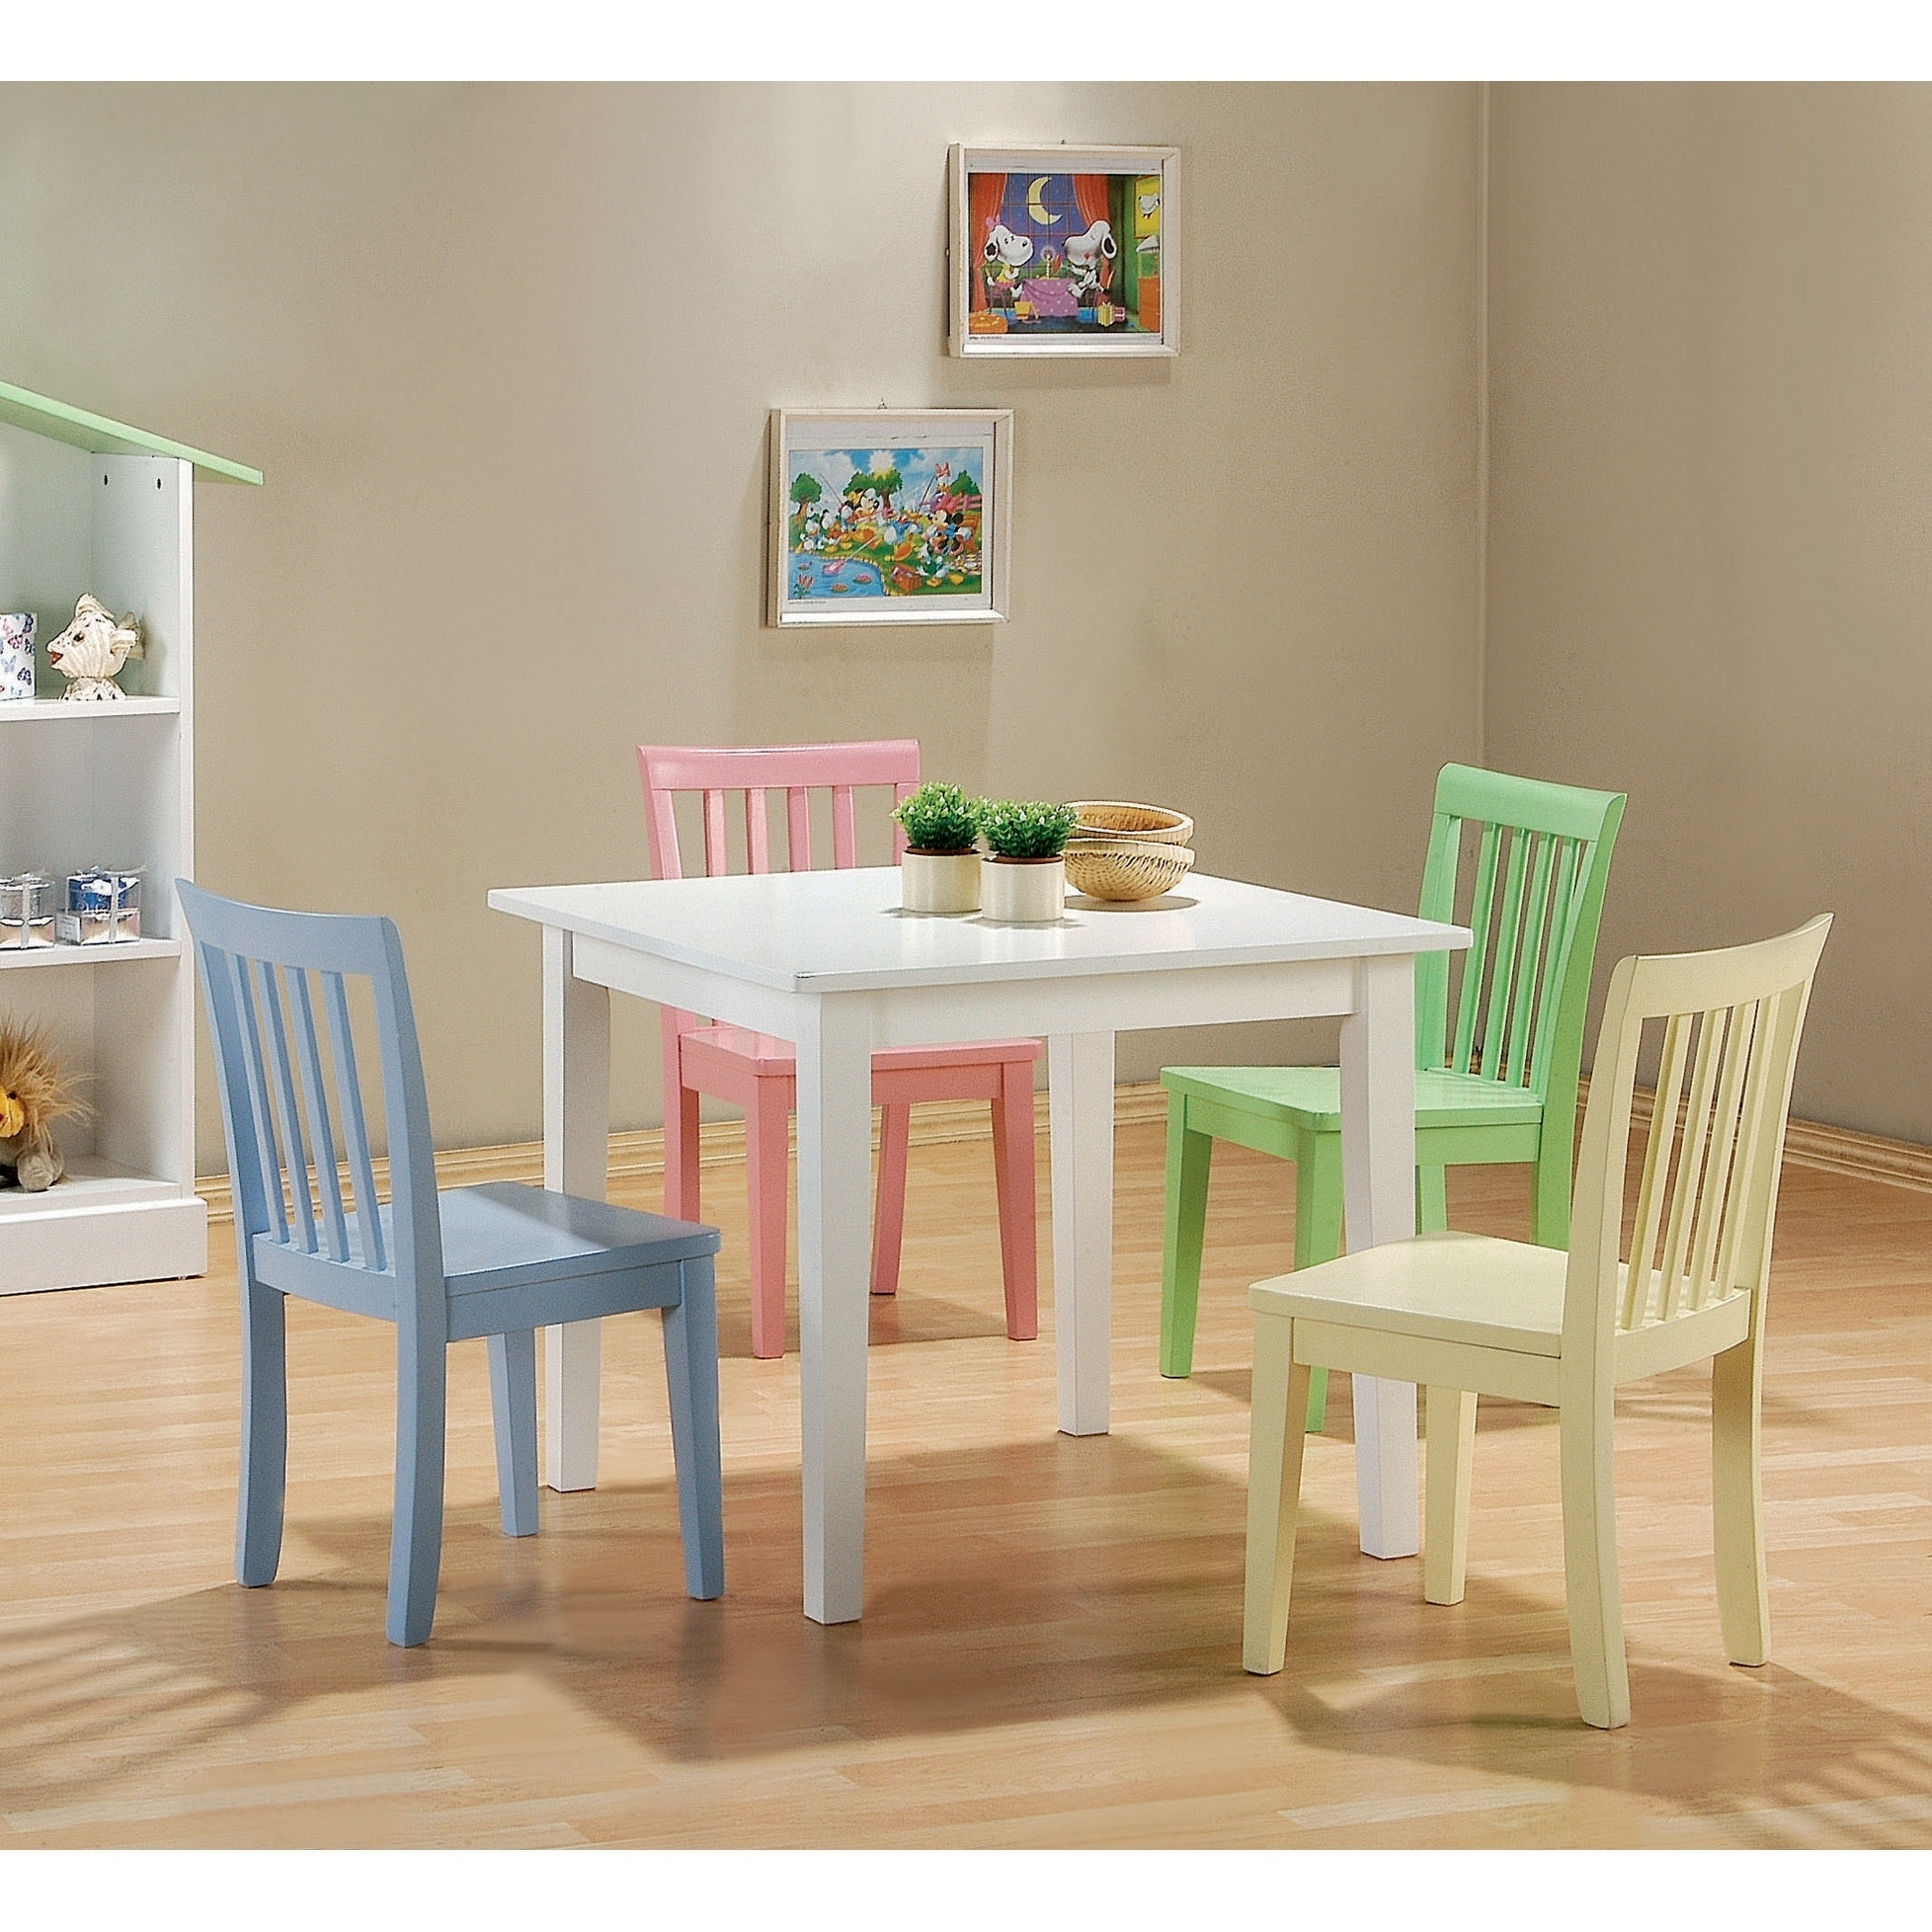 Rory 10-piece Youth Table and Chairs Dining Set